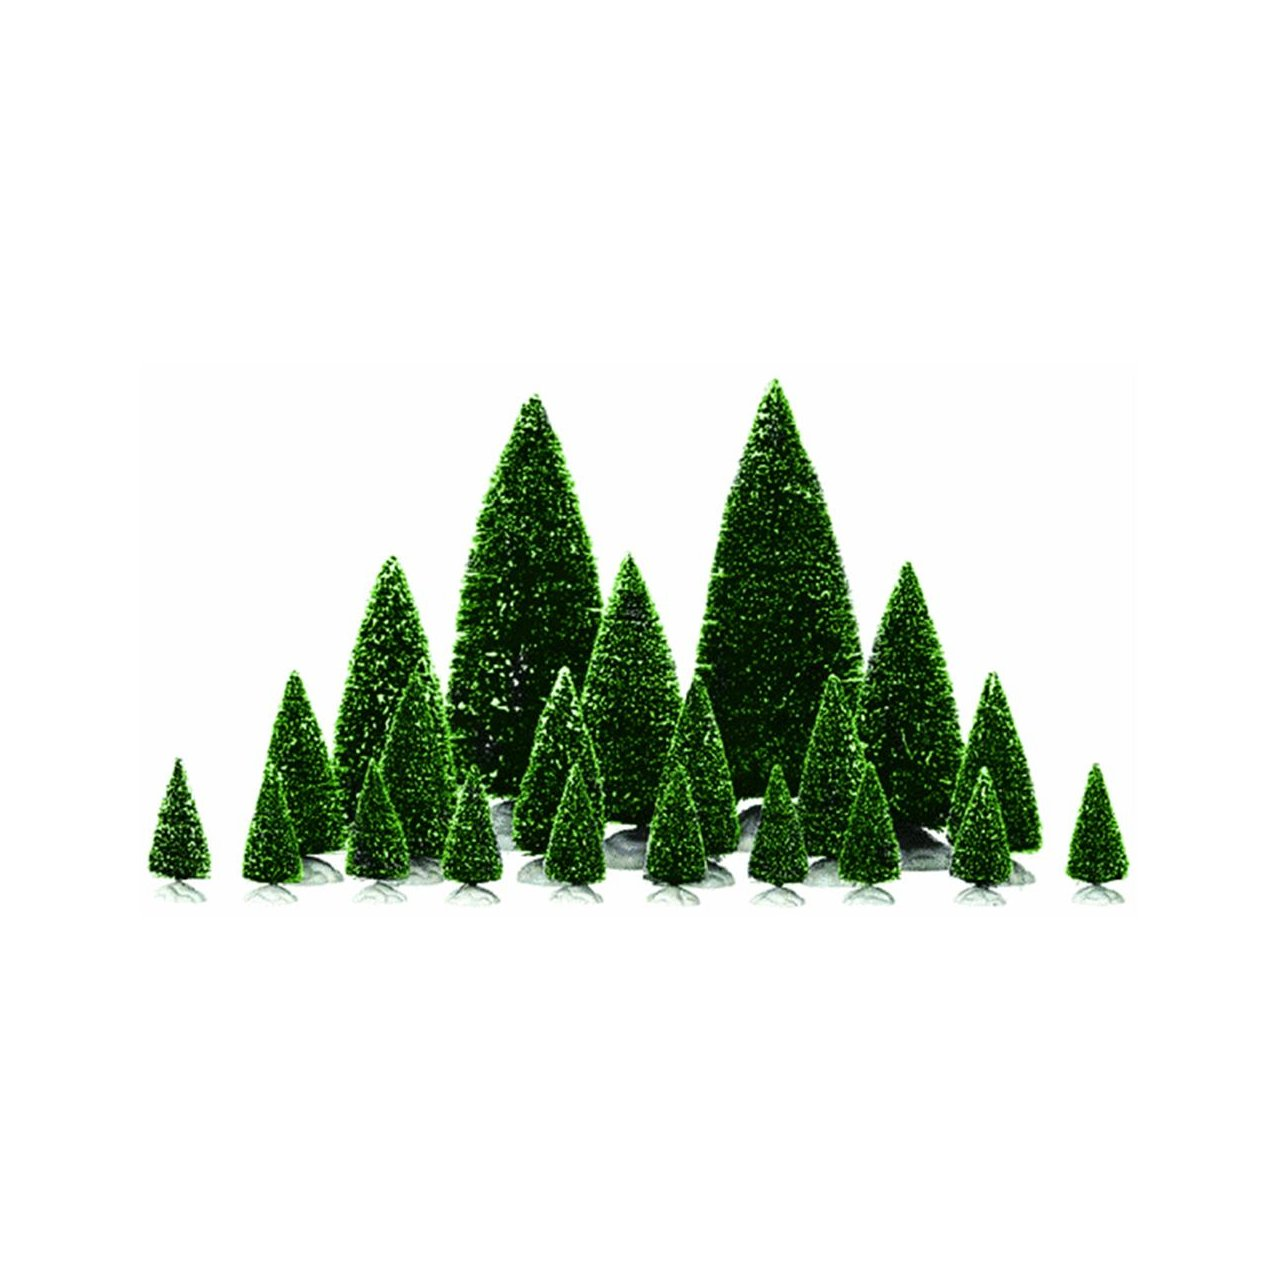 Amazon.com: Lemax Village Accessory Assorted Pine Trees: Home & Kitchen